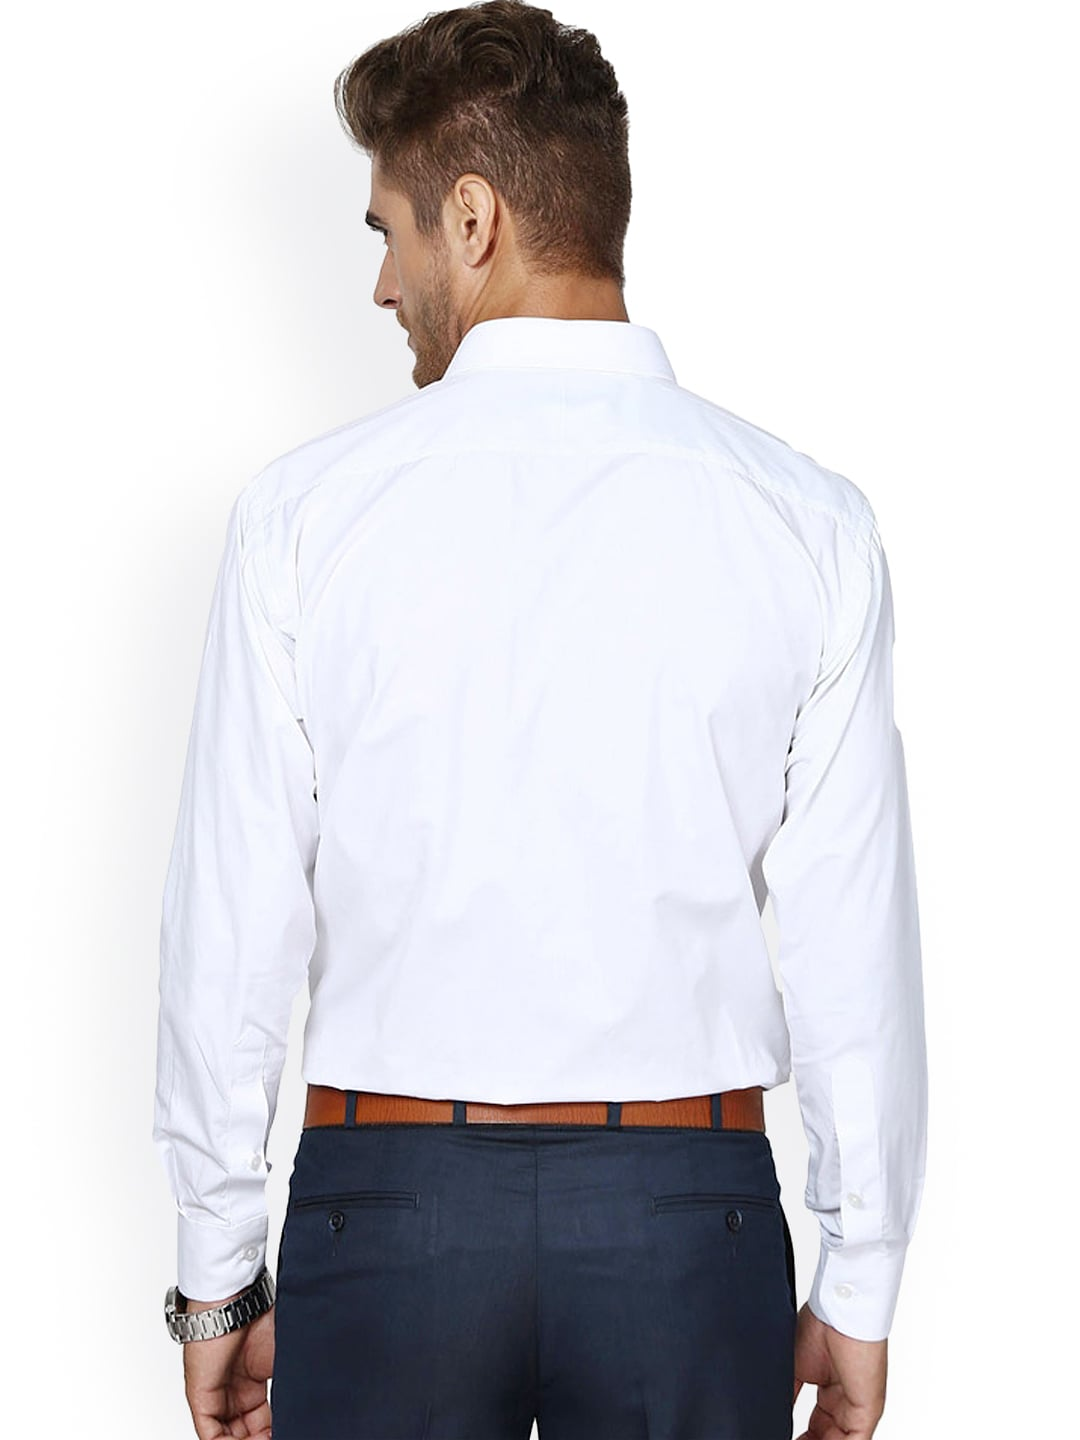 White shirt formal artee shirt for Mens formal white shirts